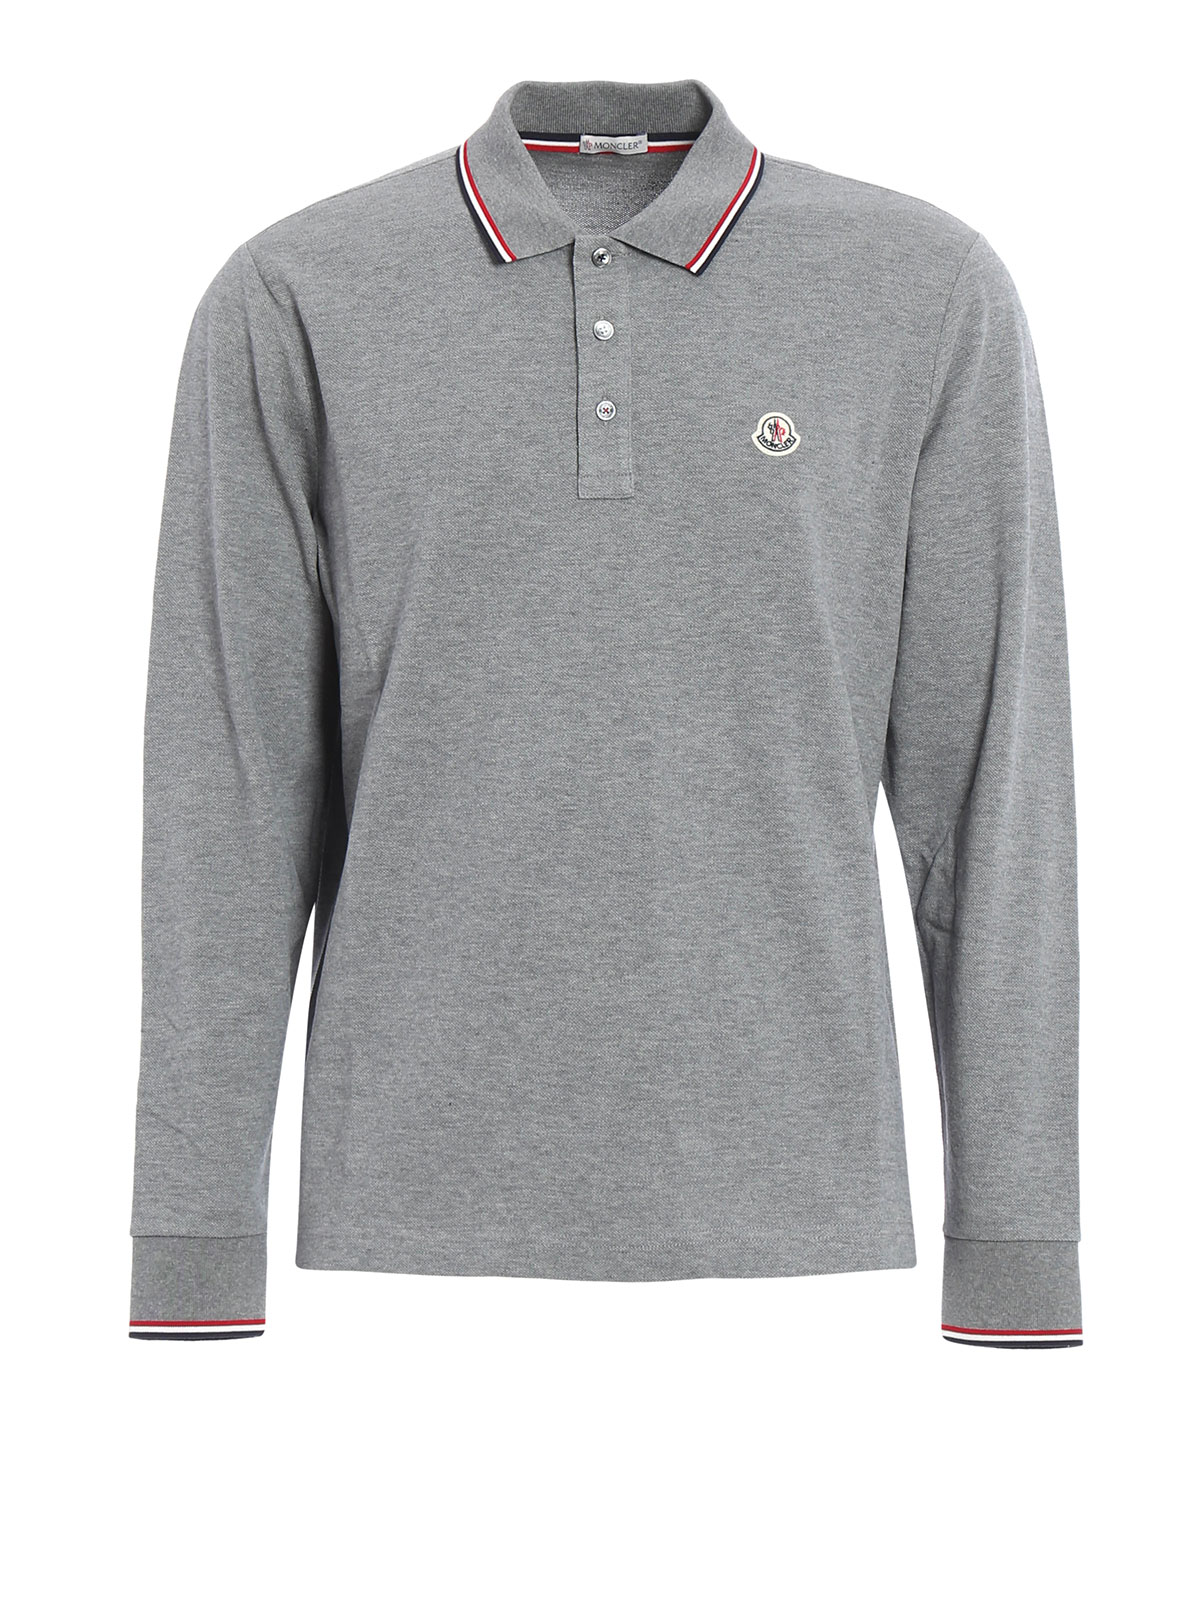 moncler long sleeved cotton polo shirt polo shirts c2 091 8348000 84556 987. Black Bedroom Furniture Sets. Home Design Ideas